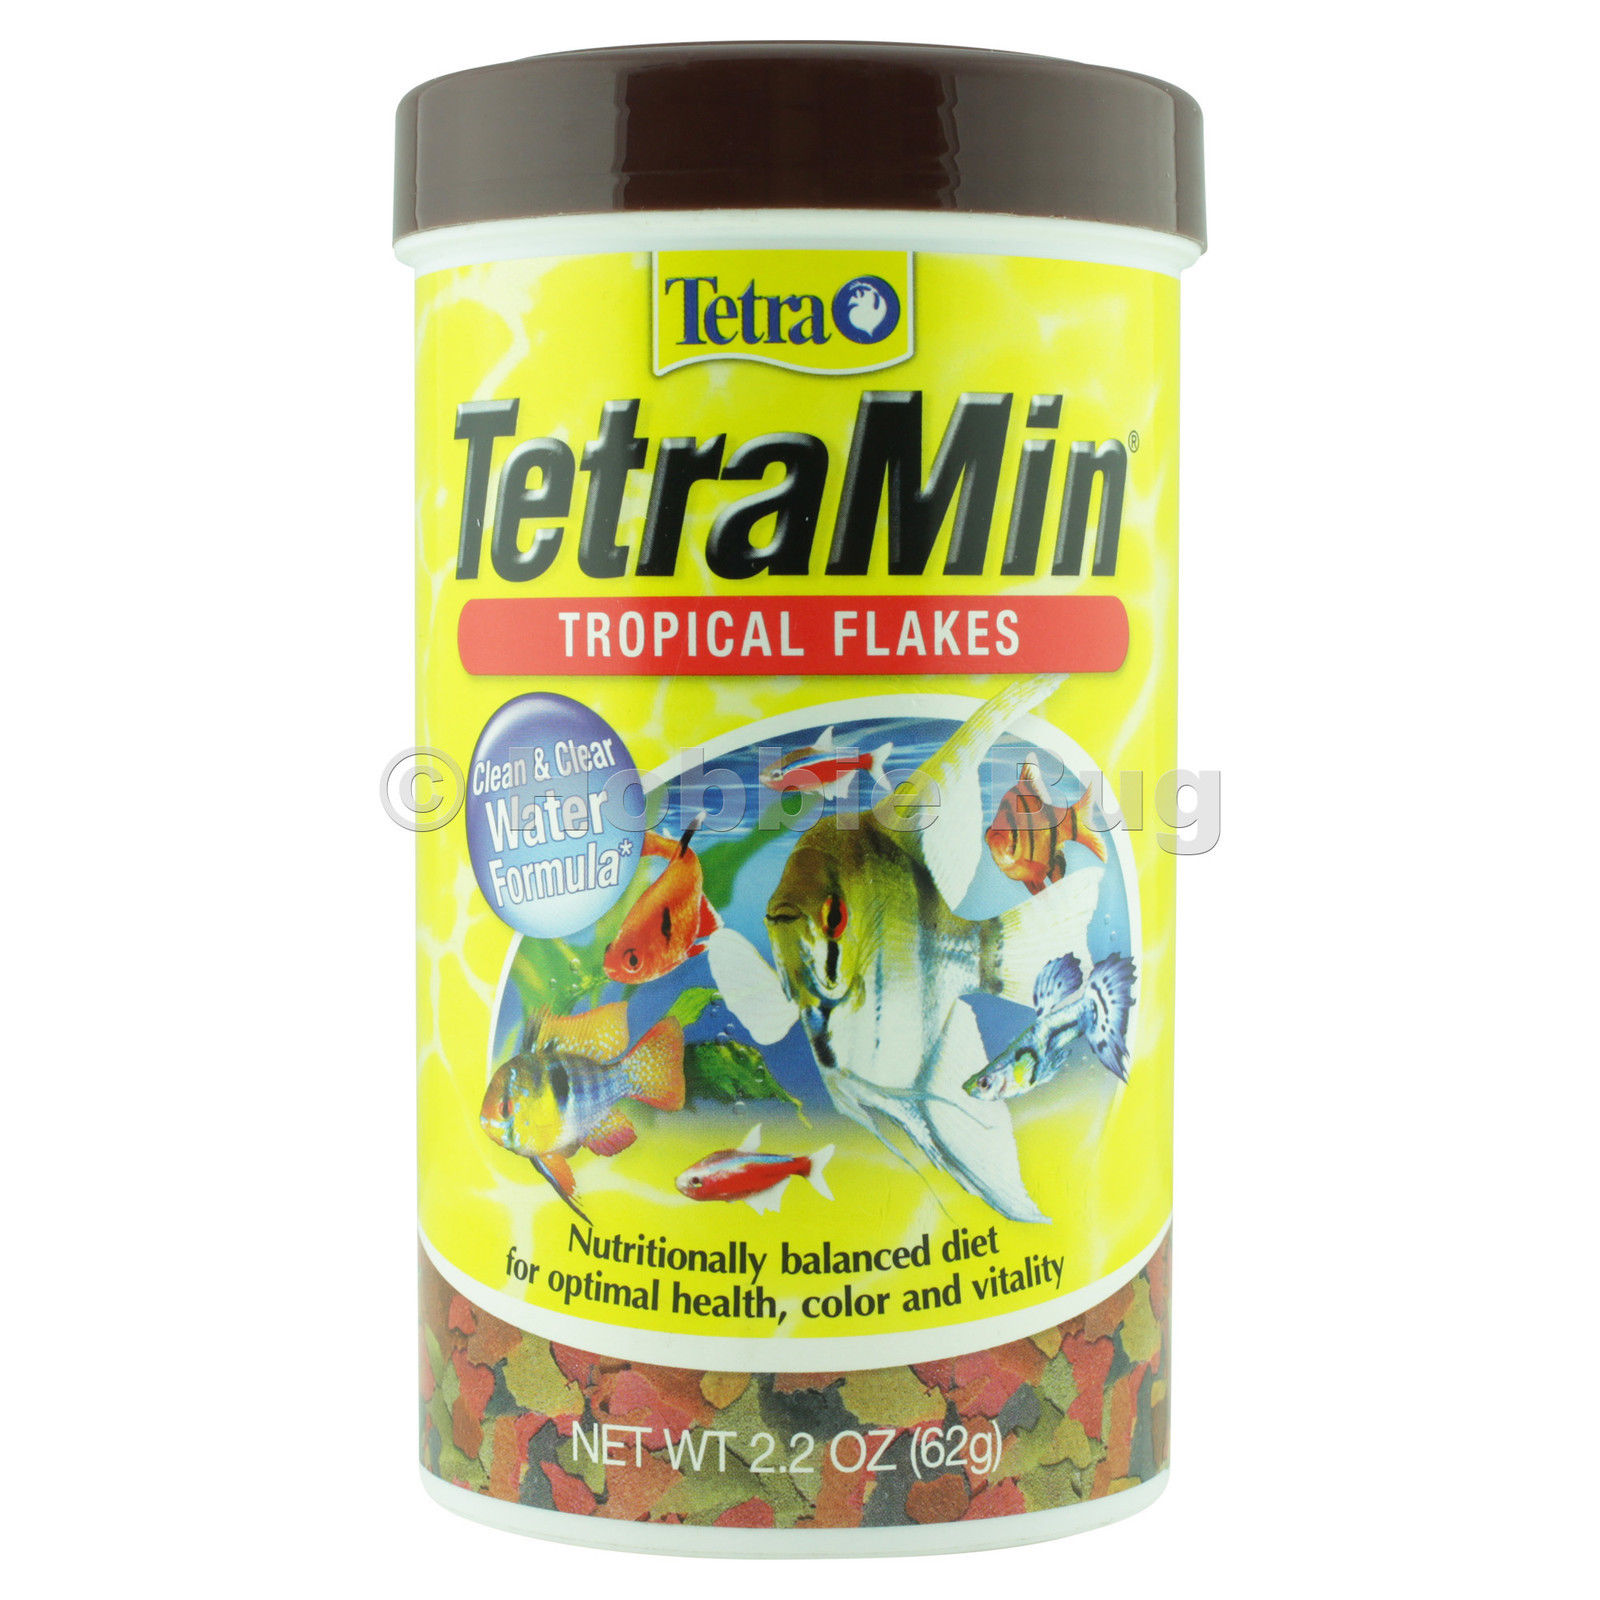 Tetra tetramin fresh water aquarium tank tropical for Aquarium fish food